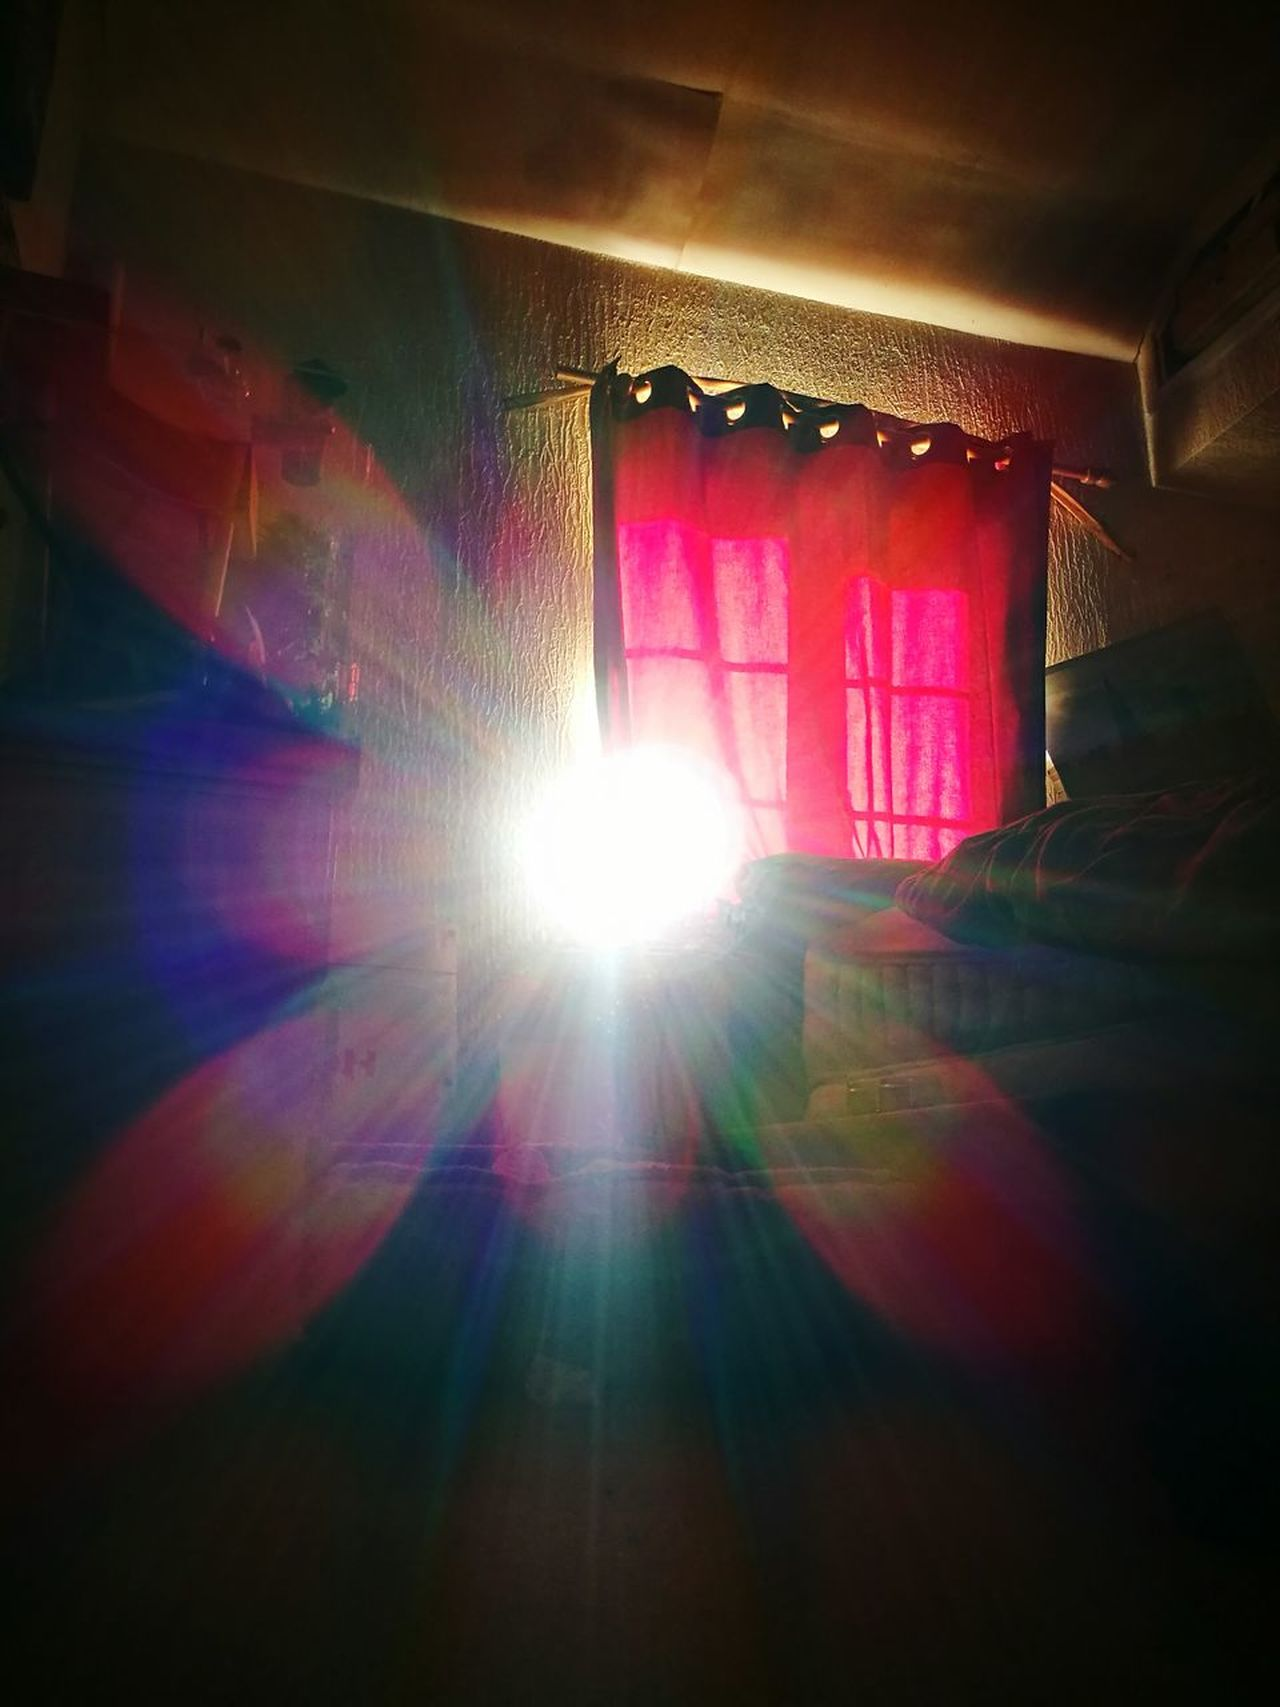 Indoors  Curtain No People Architecture Day Light Spectrum Sunbeam Colour Spectrum Beams Of Light Art Is Everywhere Flower Beautiful Day Visual Feast EyeEmNewHere Another Dimension Beam Me Up Beauty In Nature Share Your Adventure